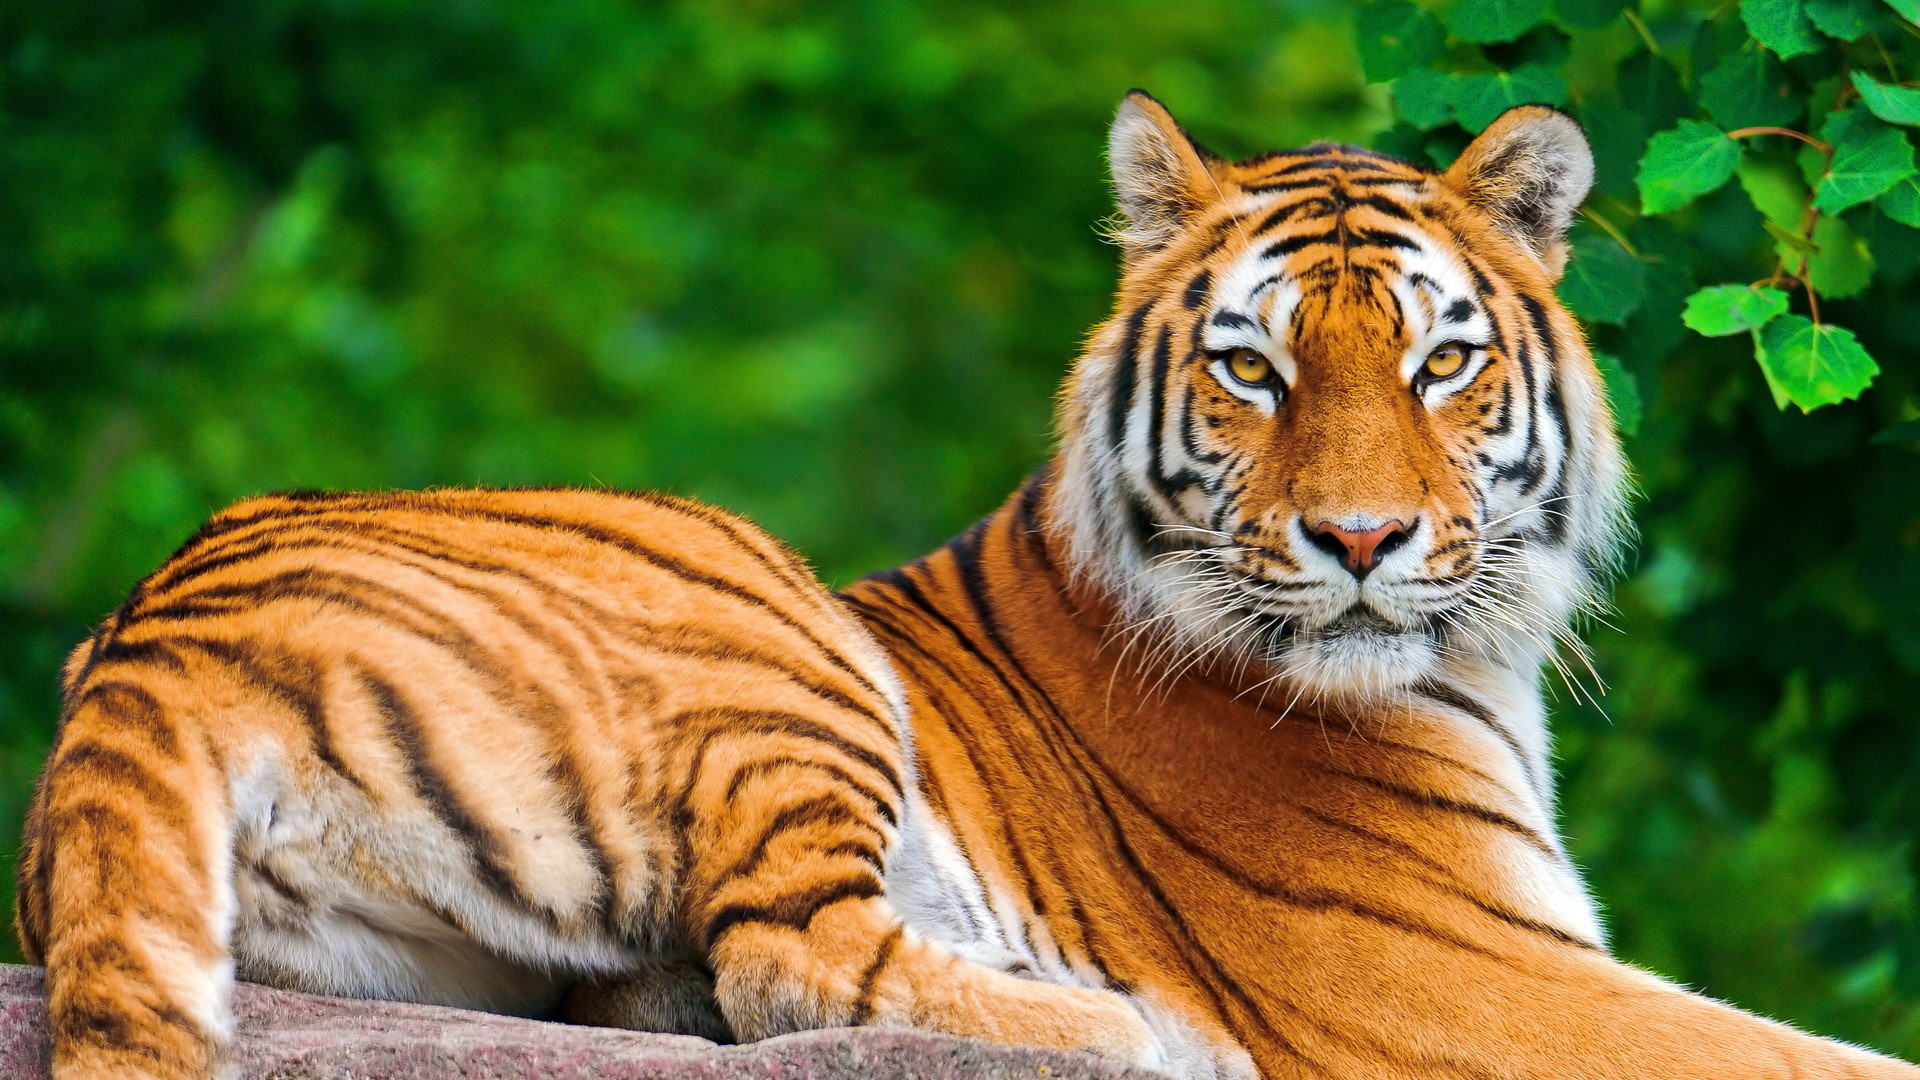 Collection of Animal Background Wallpaper on HDWallpapers Animal wallpaper  hd desktop Wallpapers)